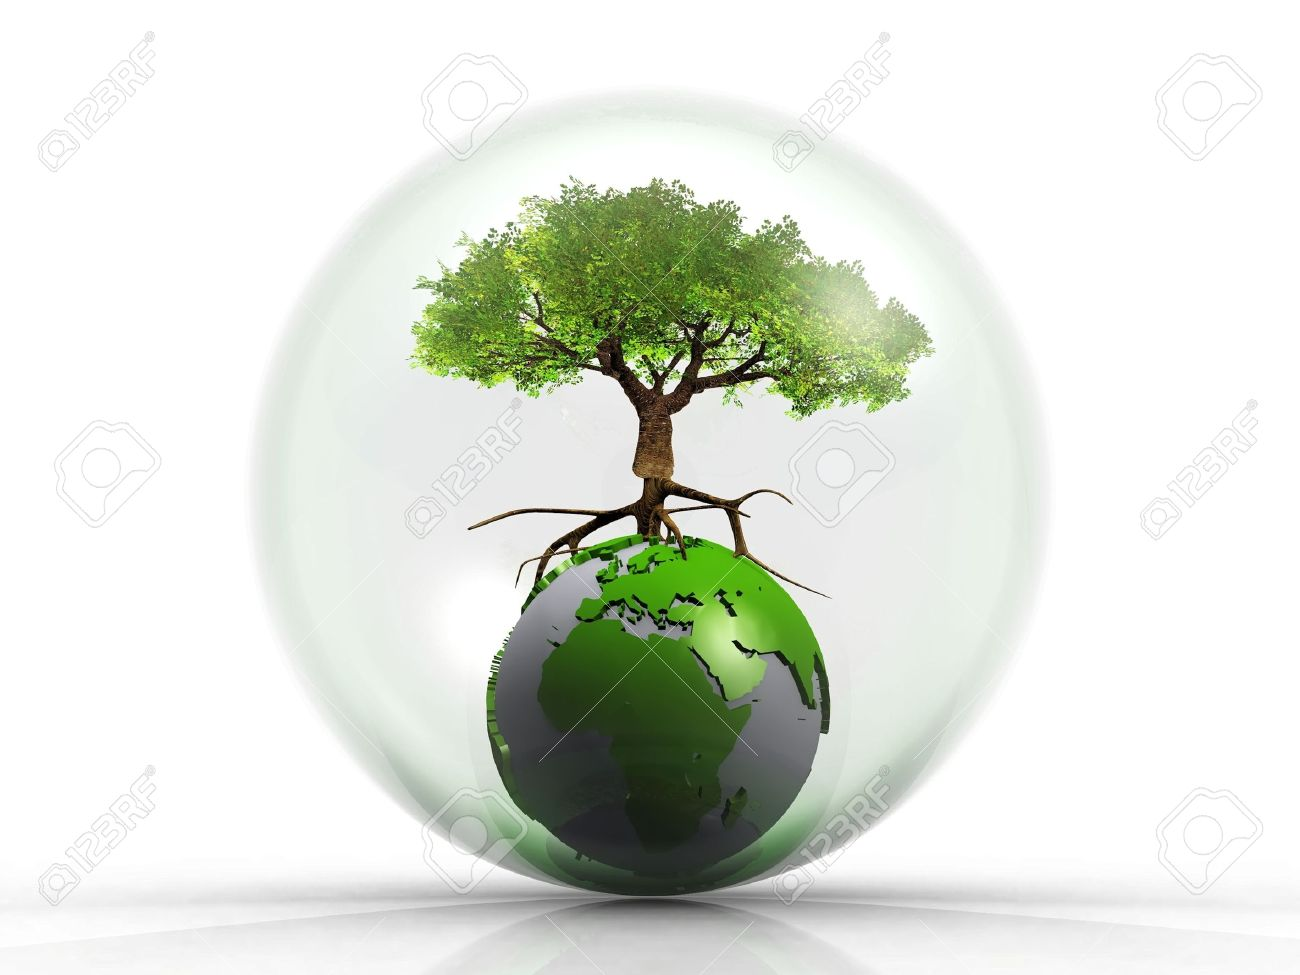 Bonsai Aarde Tree On The Earth In A Bubble